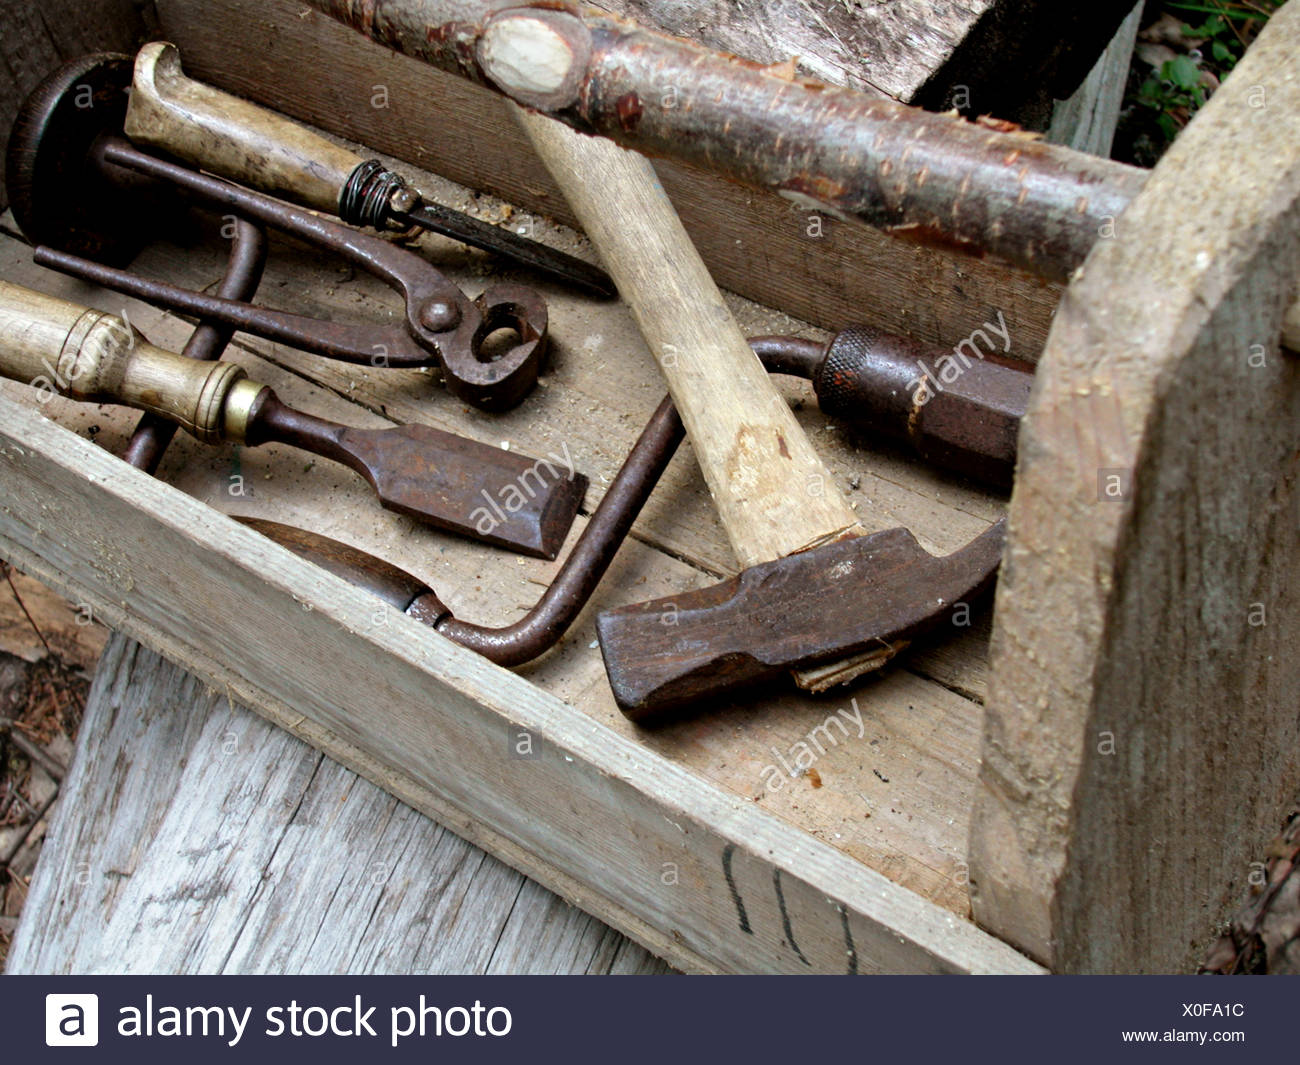 old toolbox - Stock Image